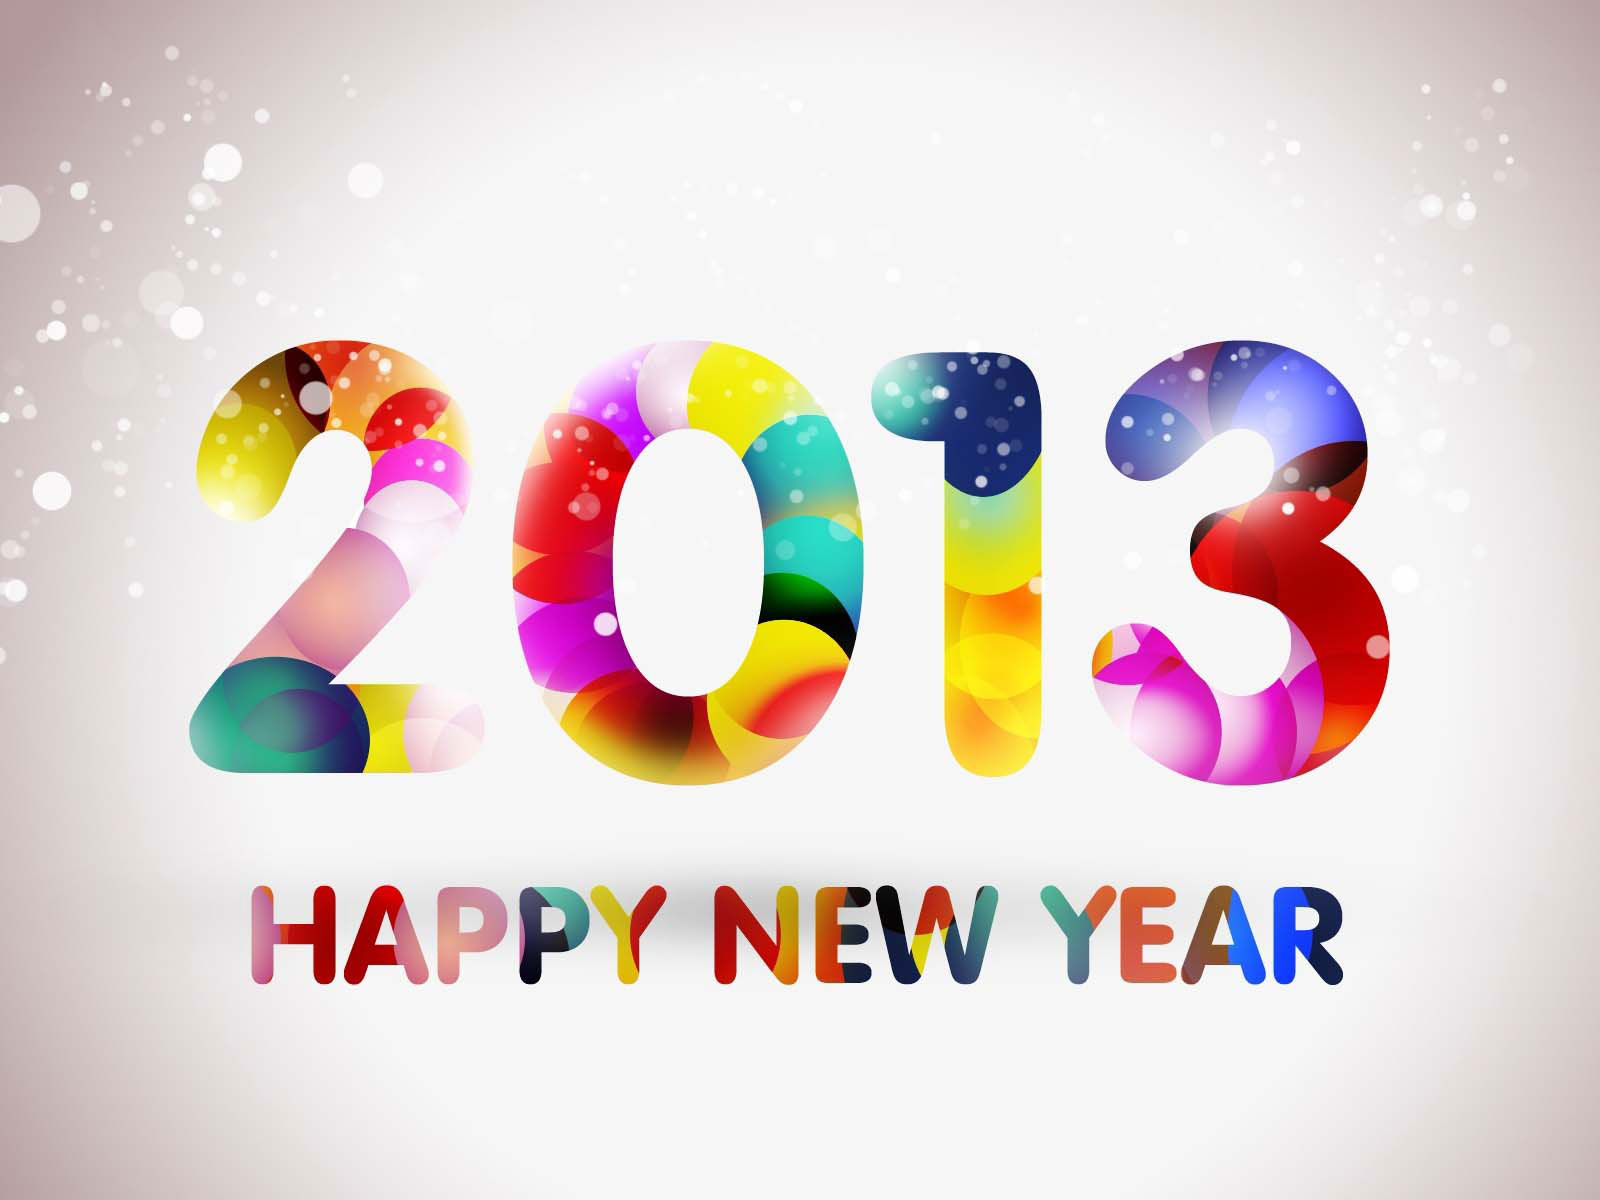 200 Happy New Year Images Pictures HD Wallpapers 2019